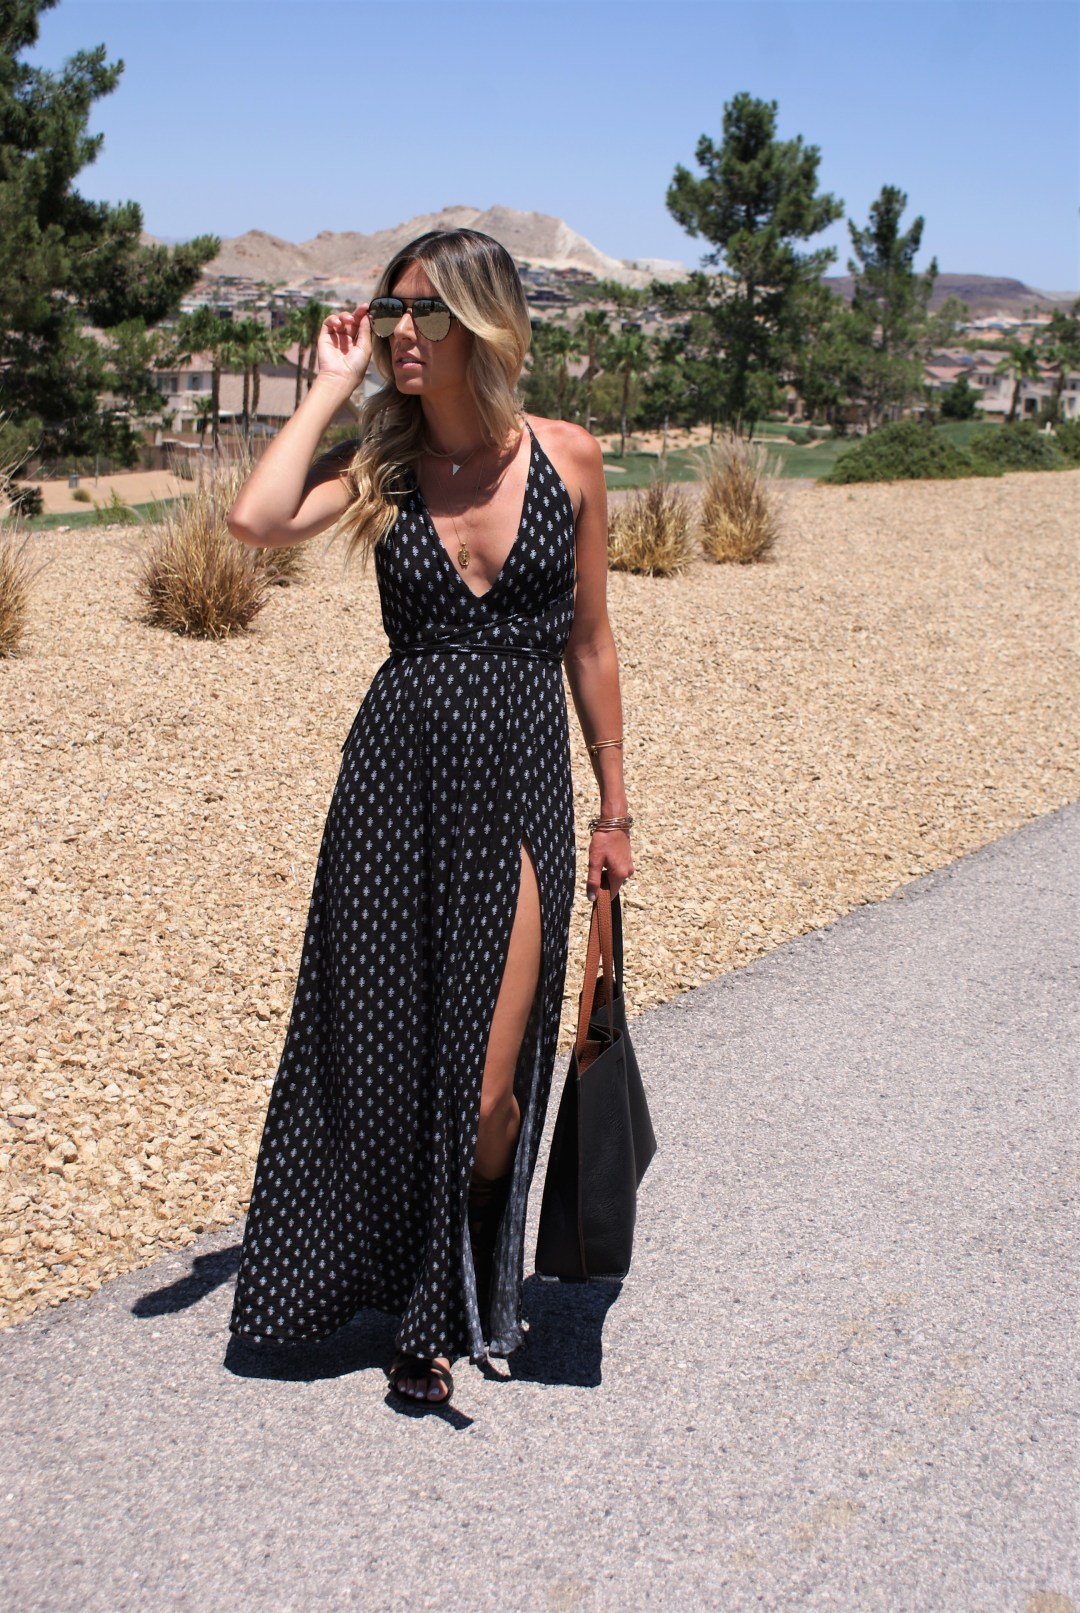 Maxi Dress Love- Diariesofdanielle.com